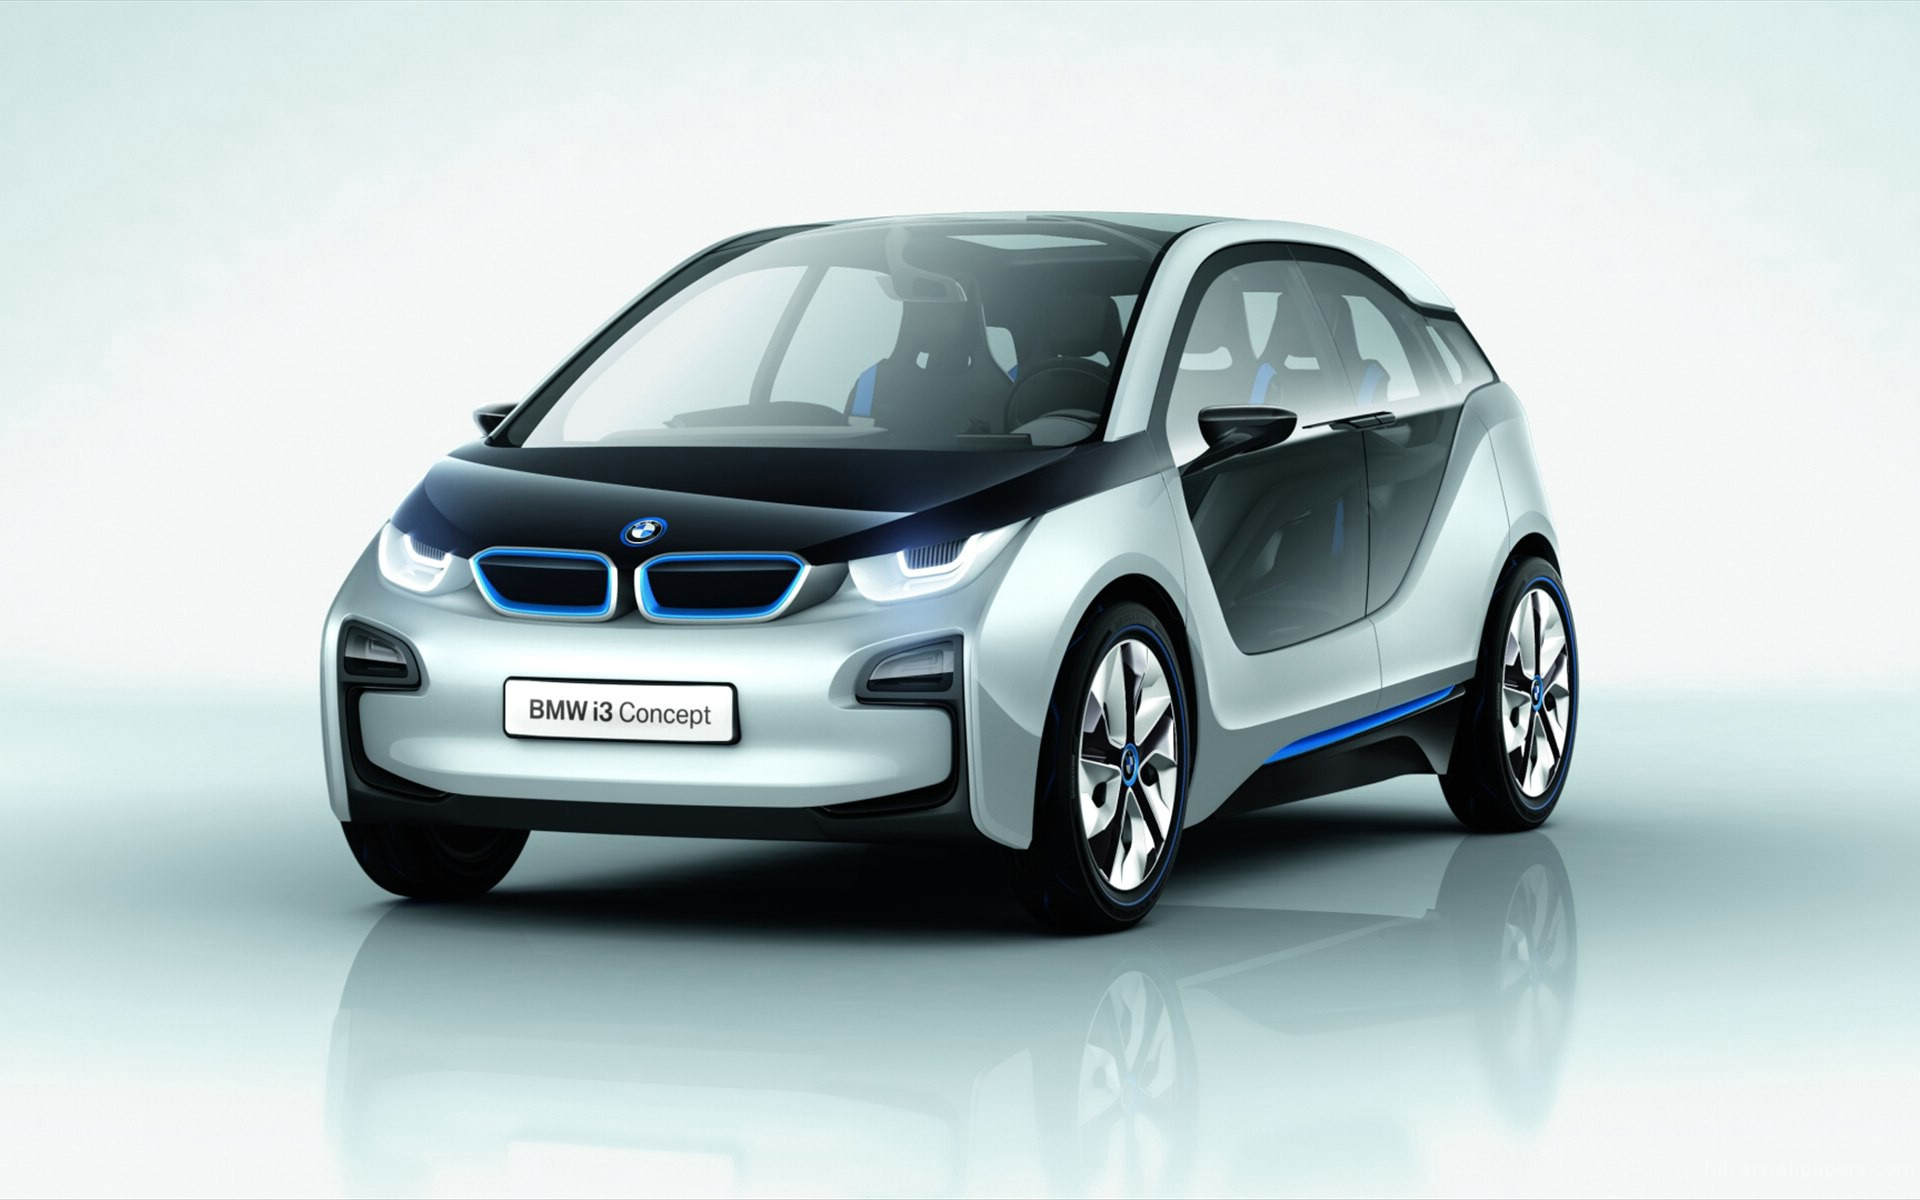 2012 BMW i3 Concept Wallpaper | HD Car Wallpapers | ID #2155